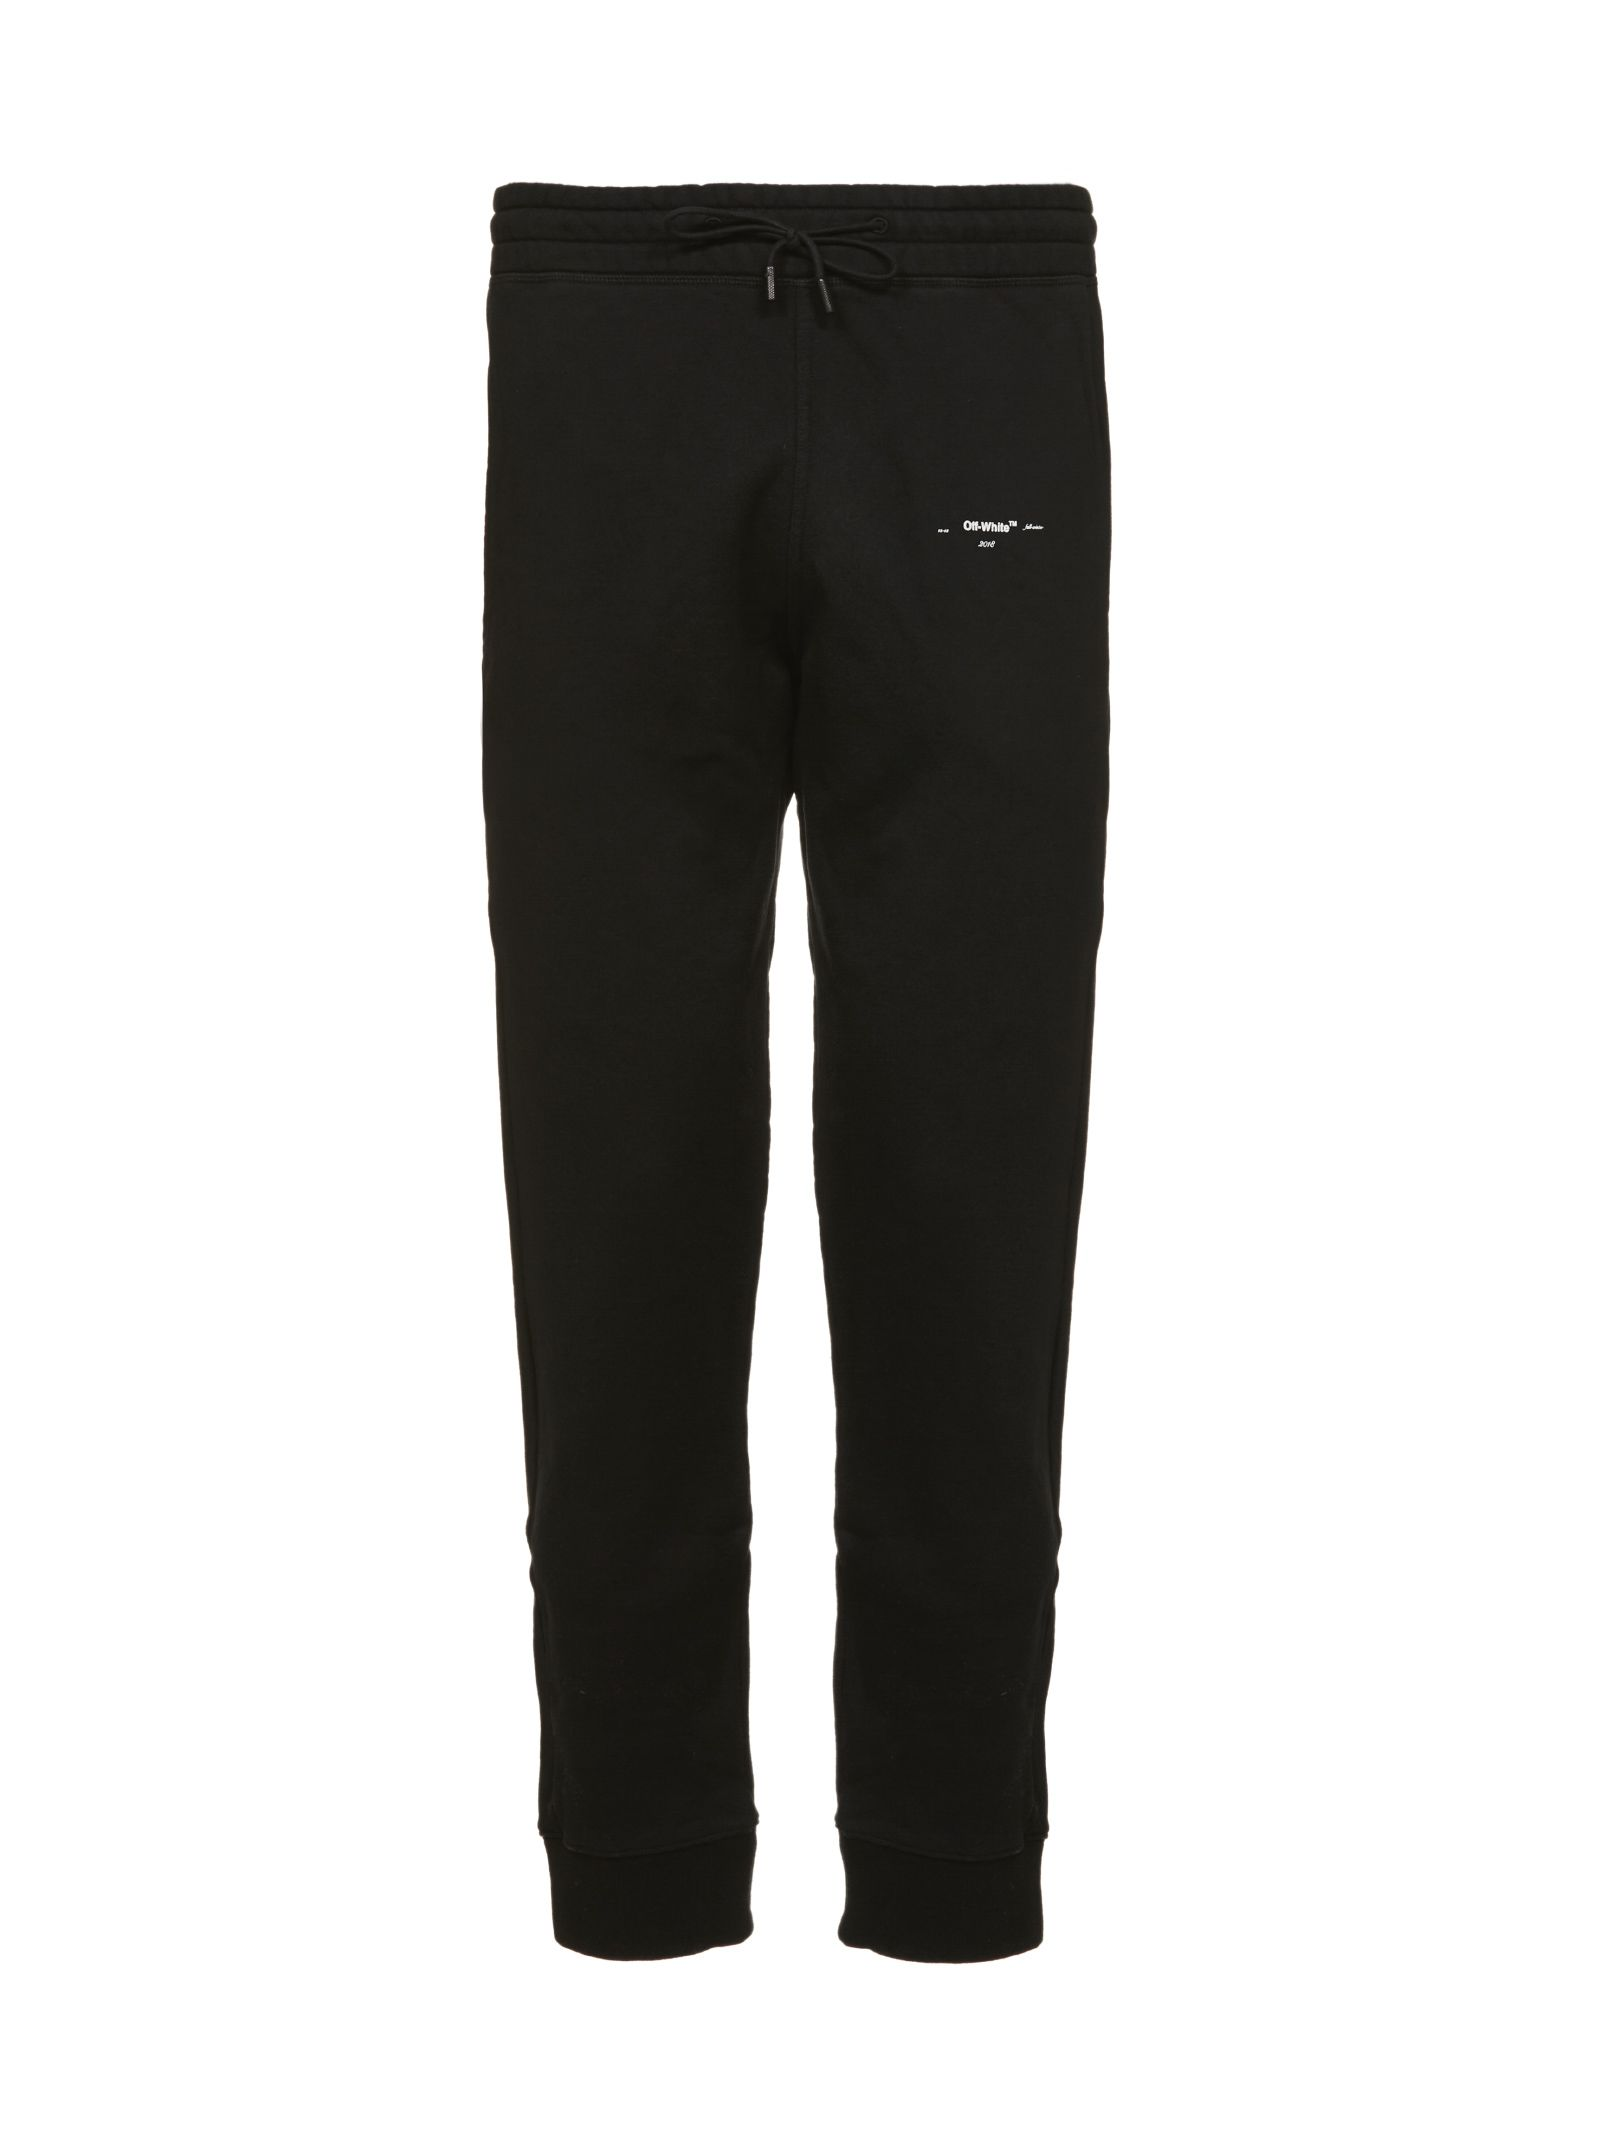 OFF-WHITE EMBROIDERED LOGO TRACK PANTS